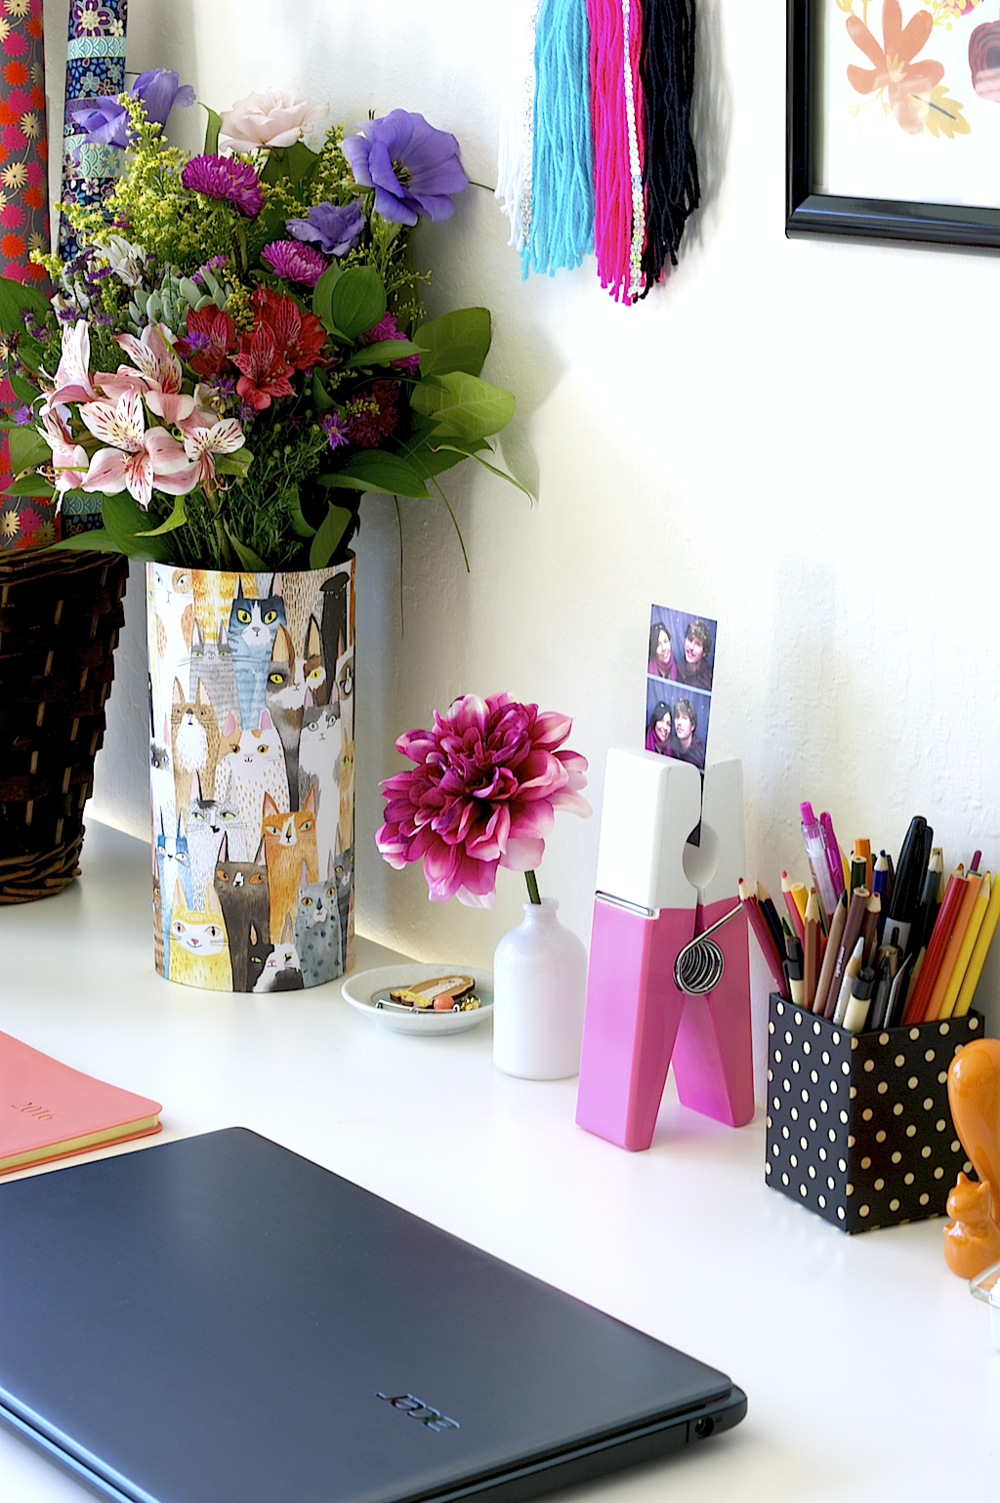 My creative space and tips for organization